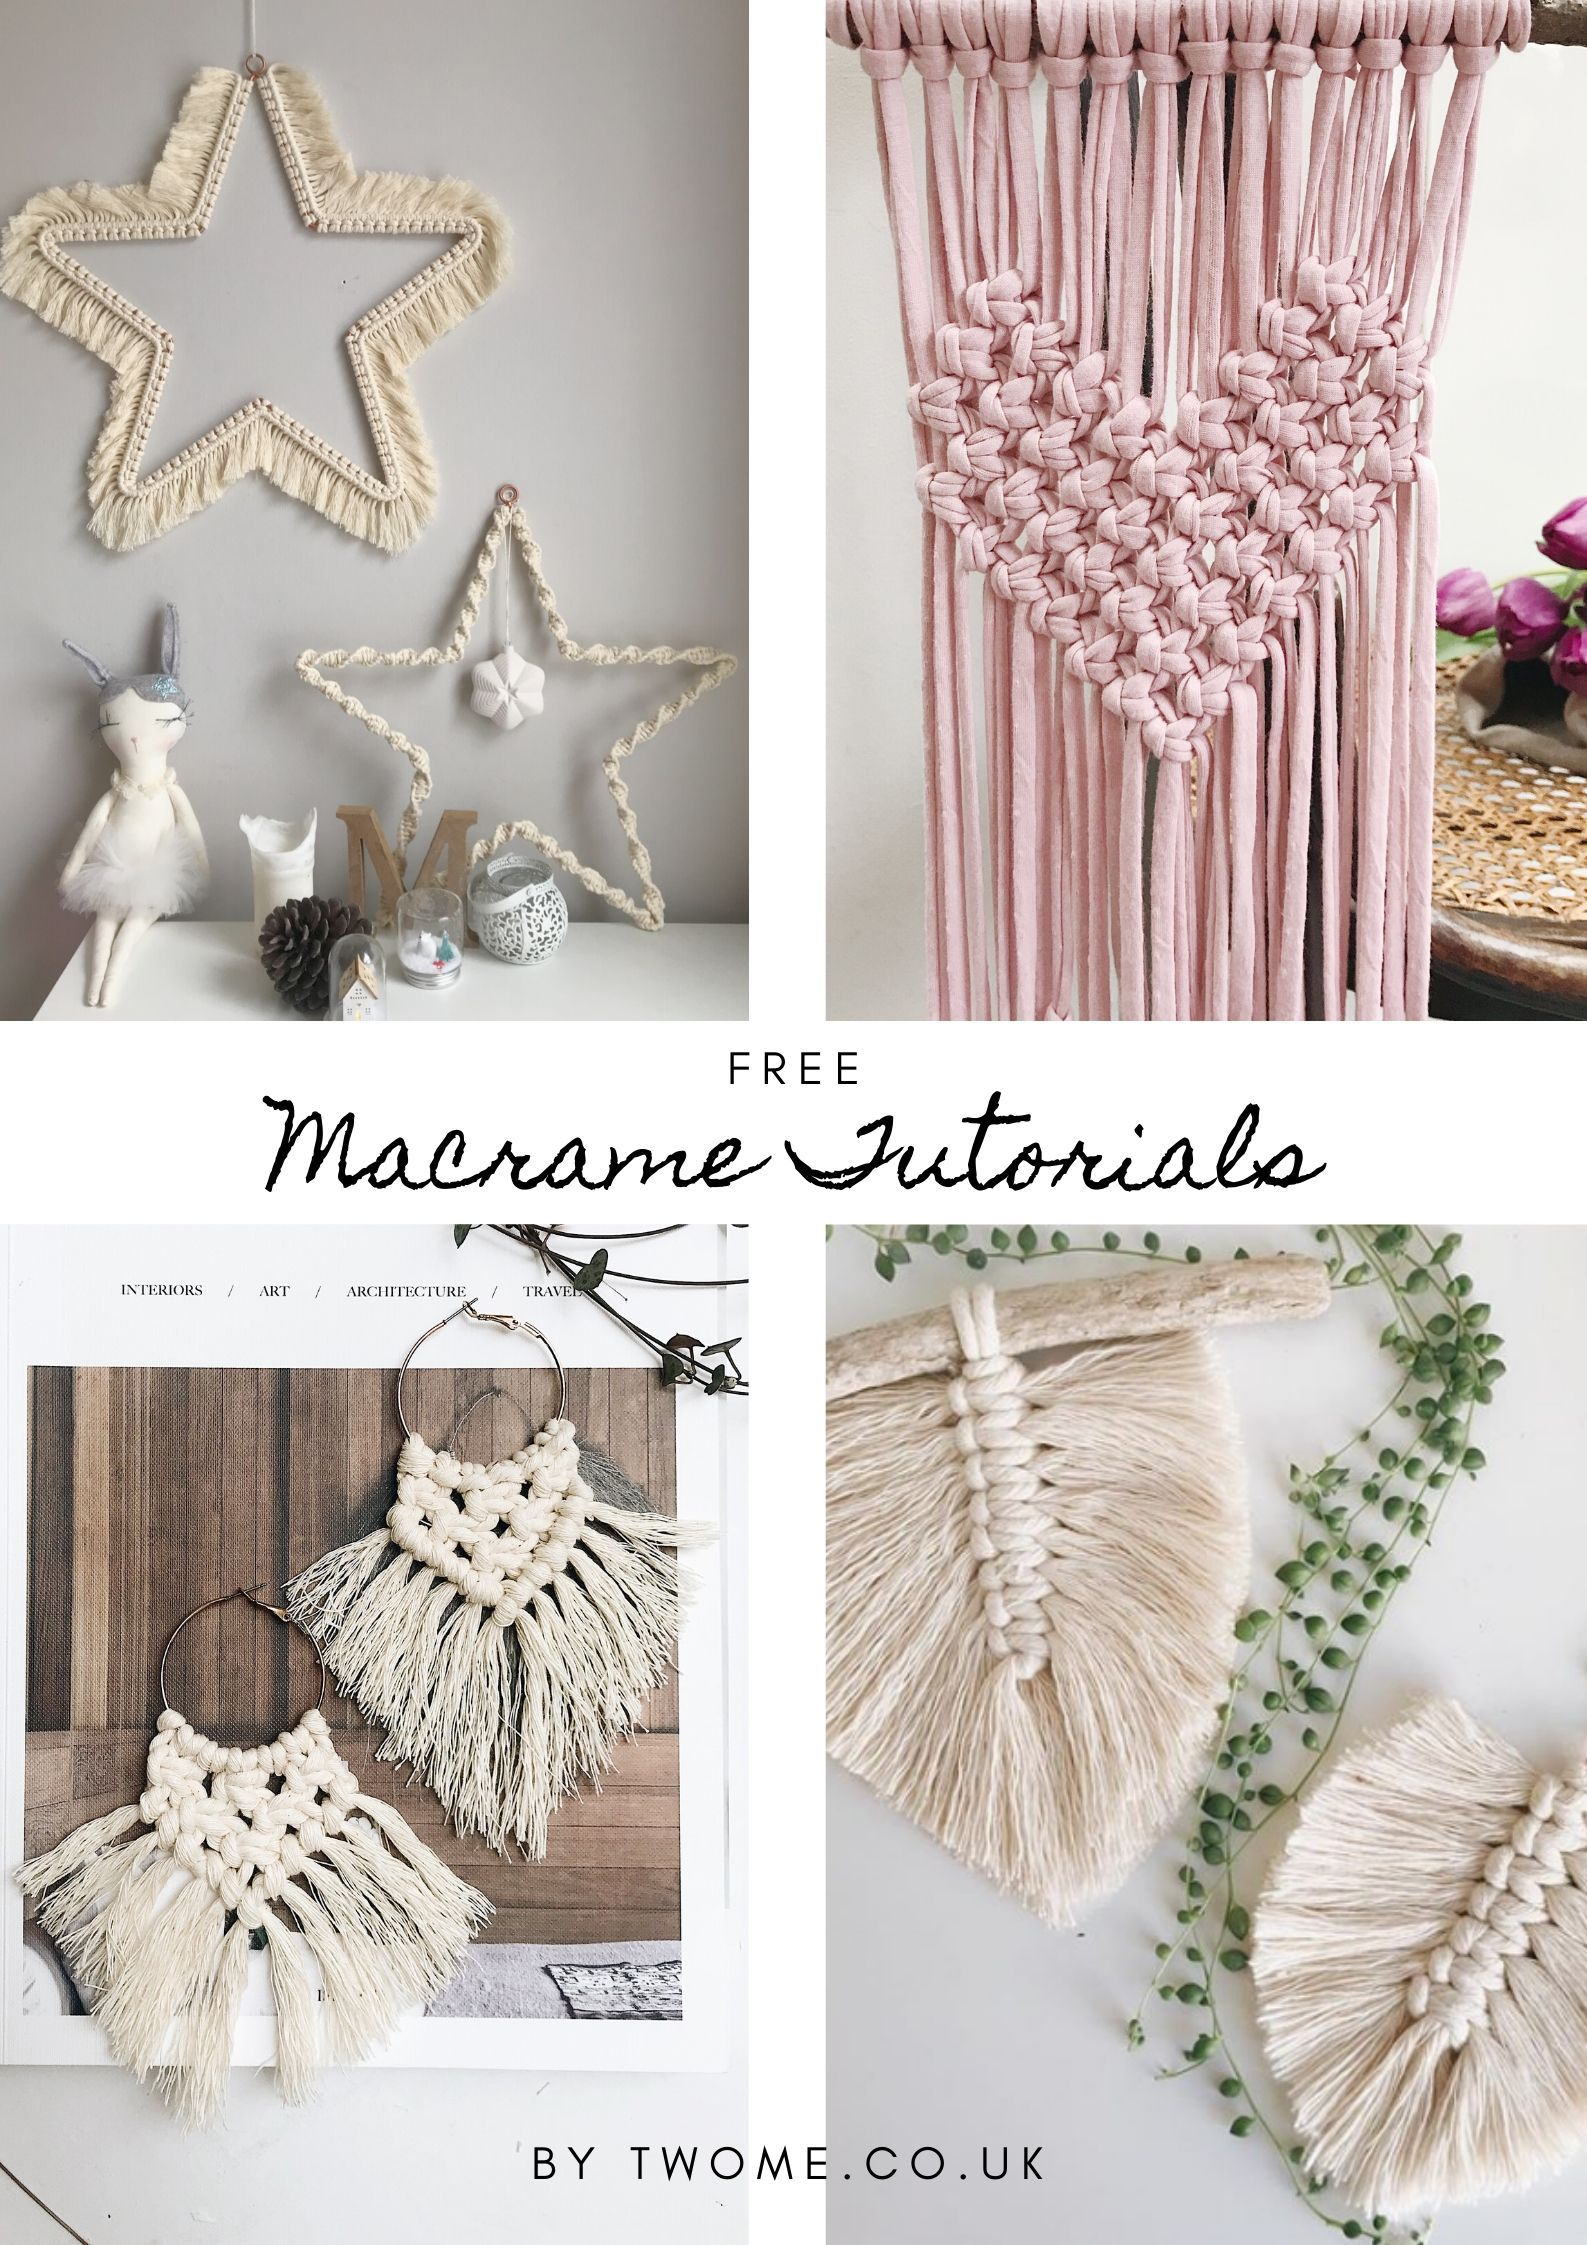 Free Macrame Tutorials For Beginners On How To Learn Macrame With